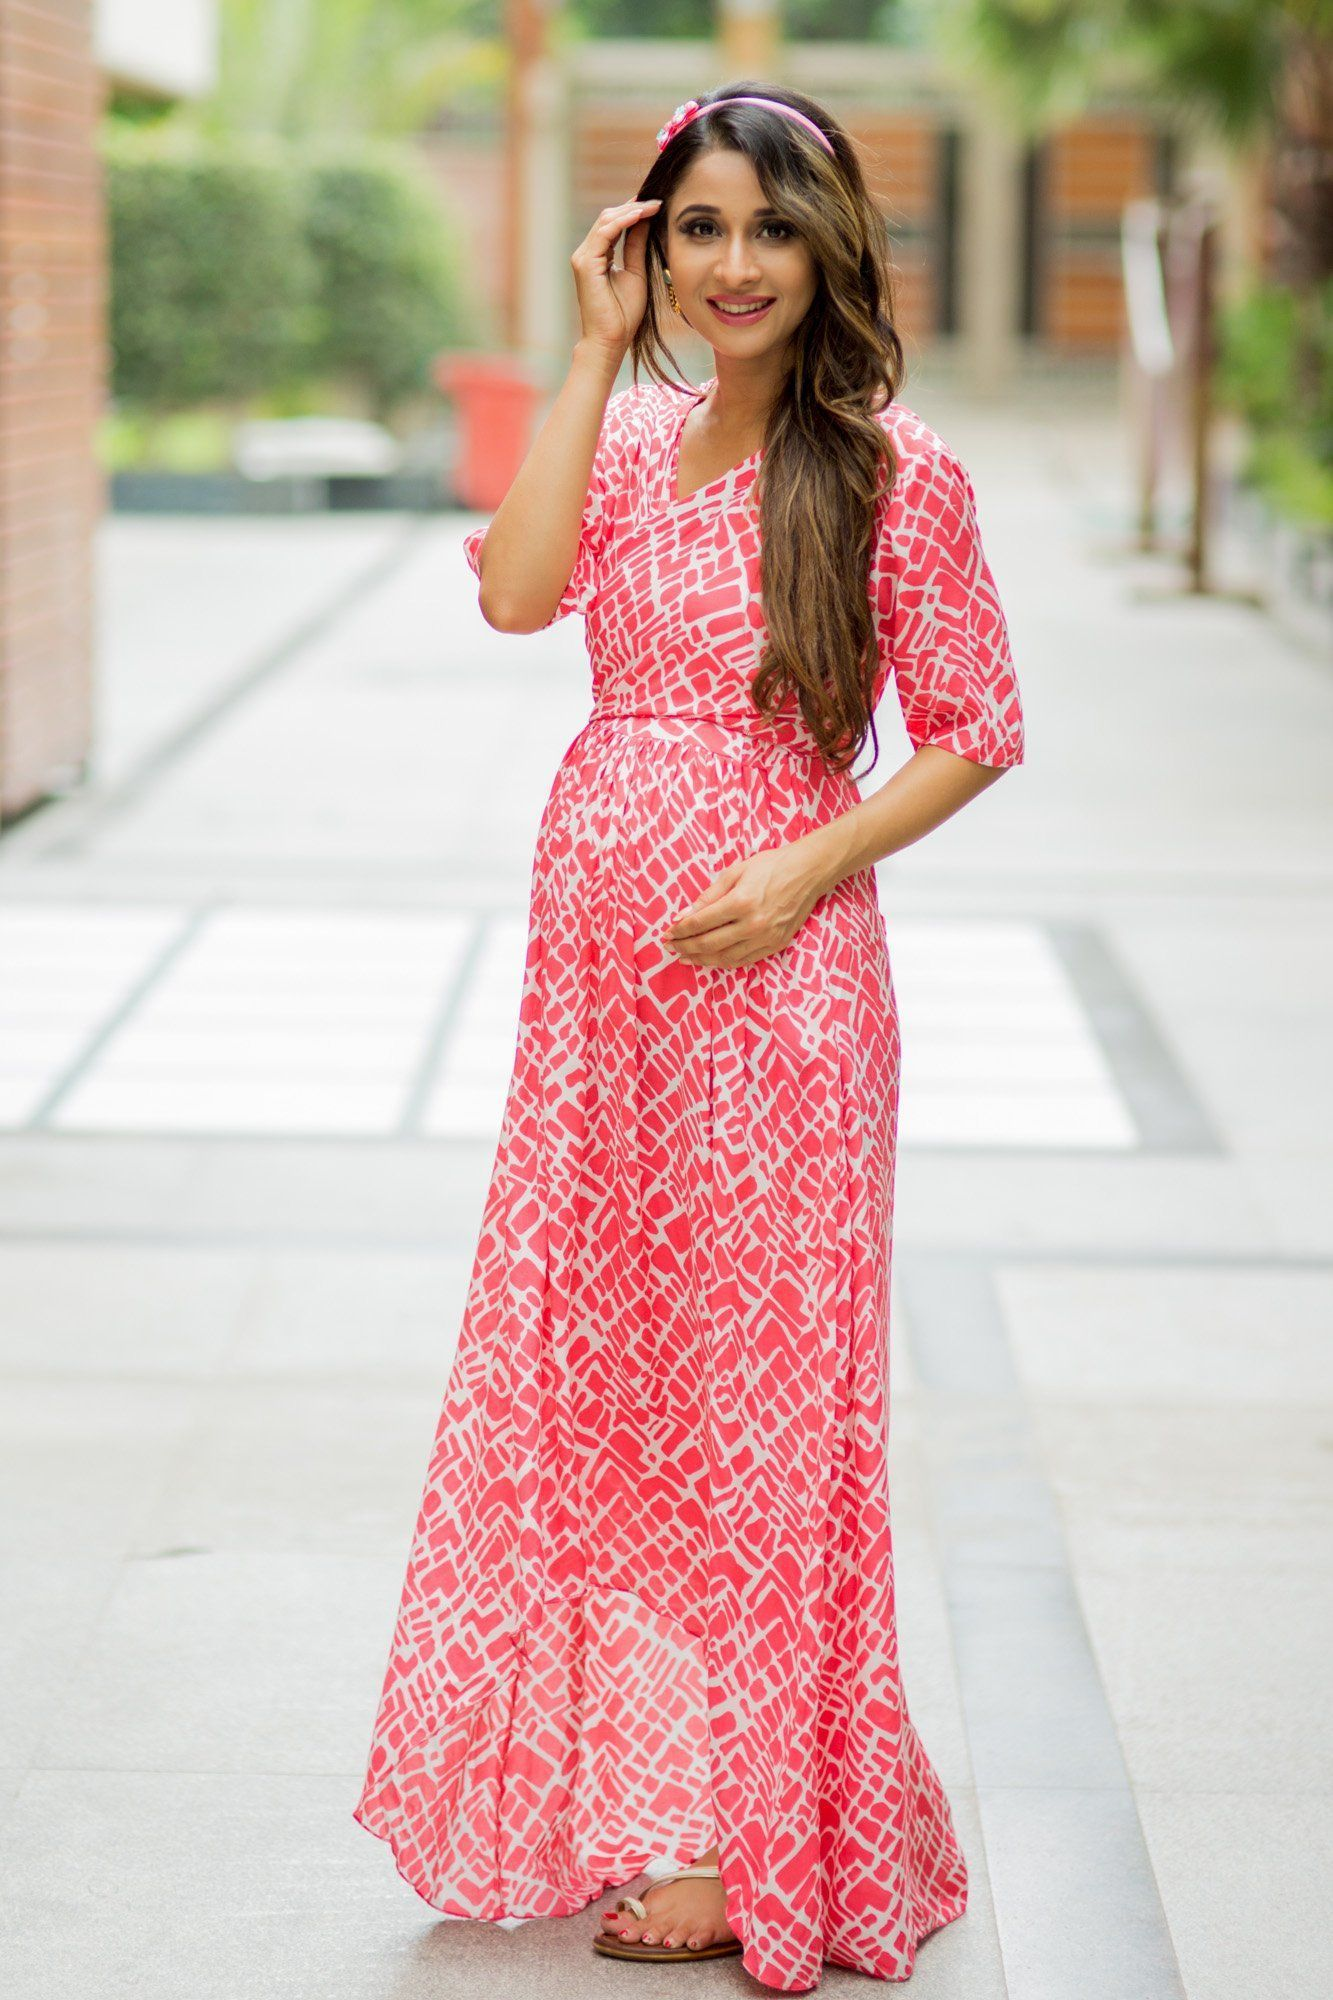 Flamingo Pink Hi-Low Maternity & Nursing Wrap Dress - MOMZJOY.COM